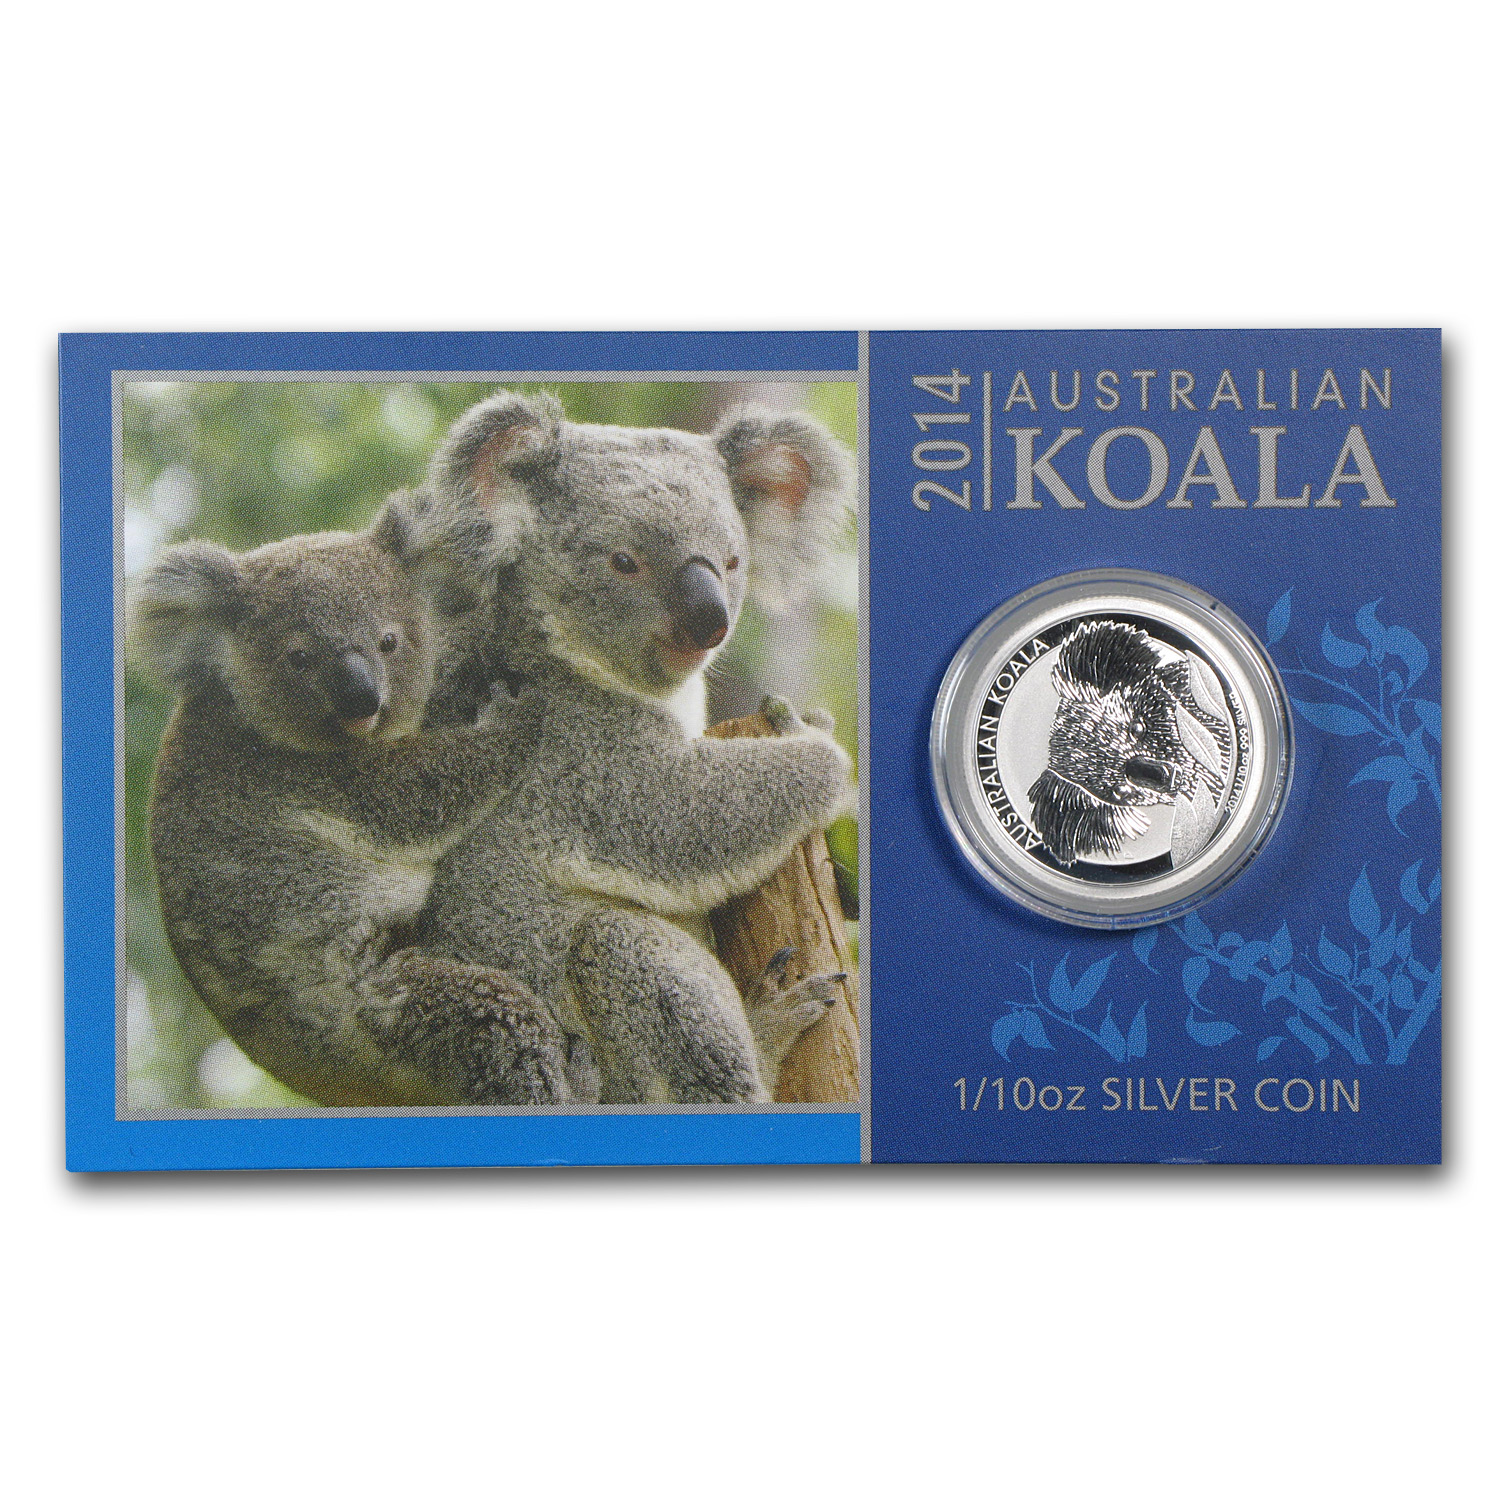 2014 1/10 oz Silver Australian Koala (In display card)